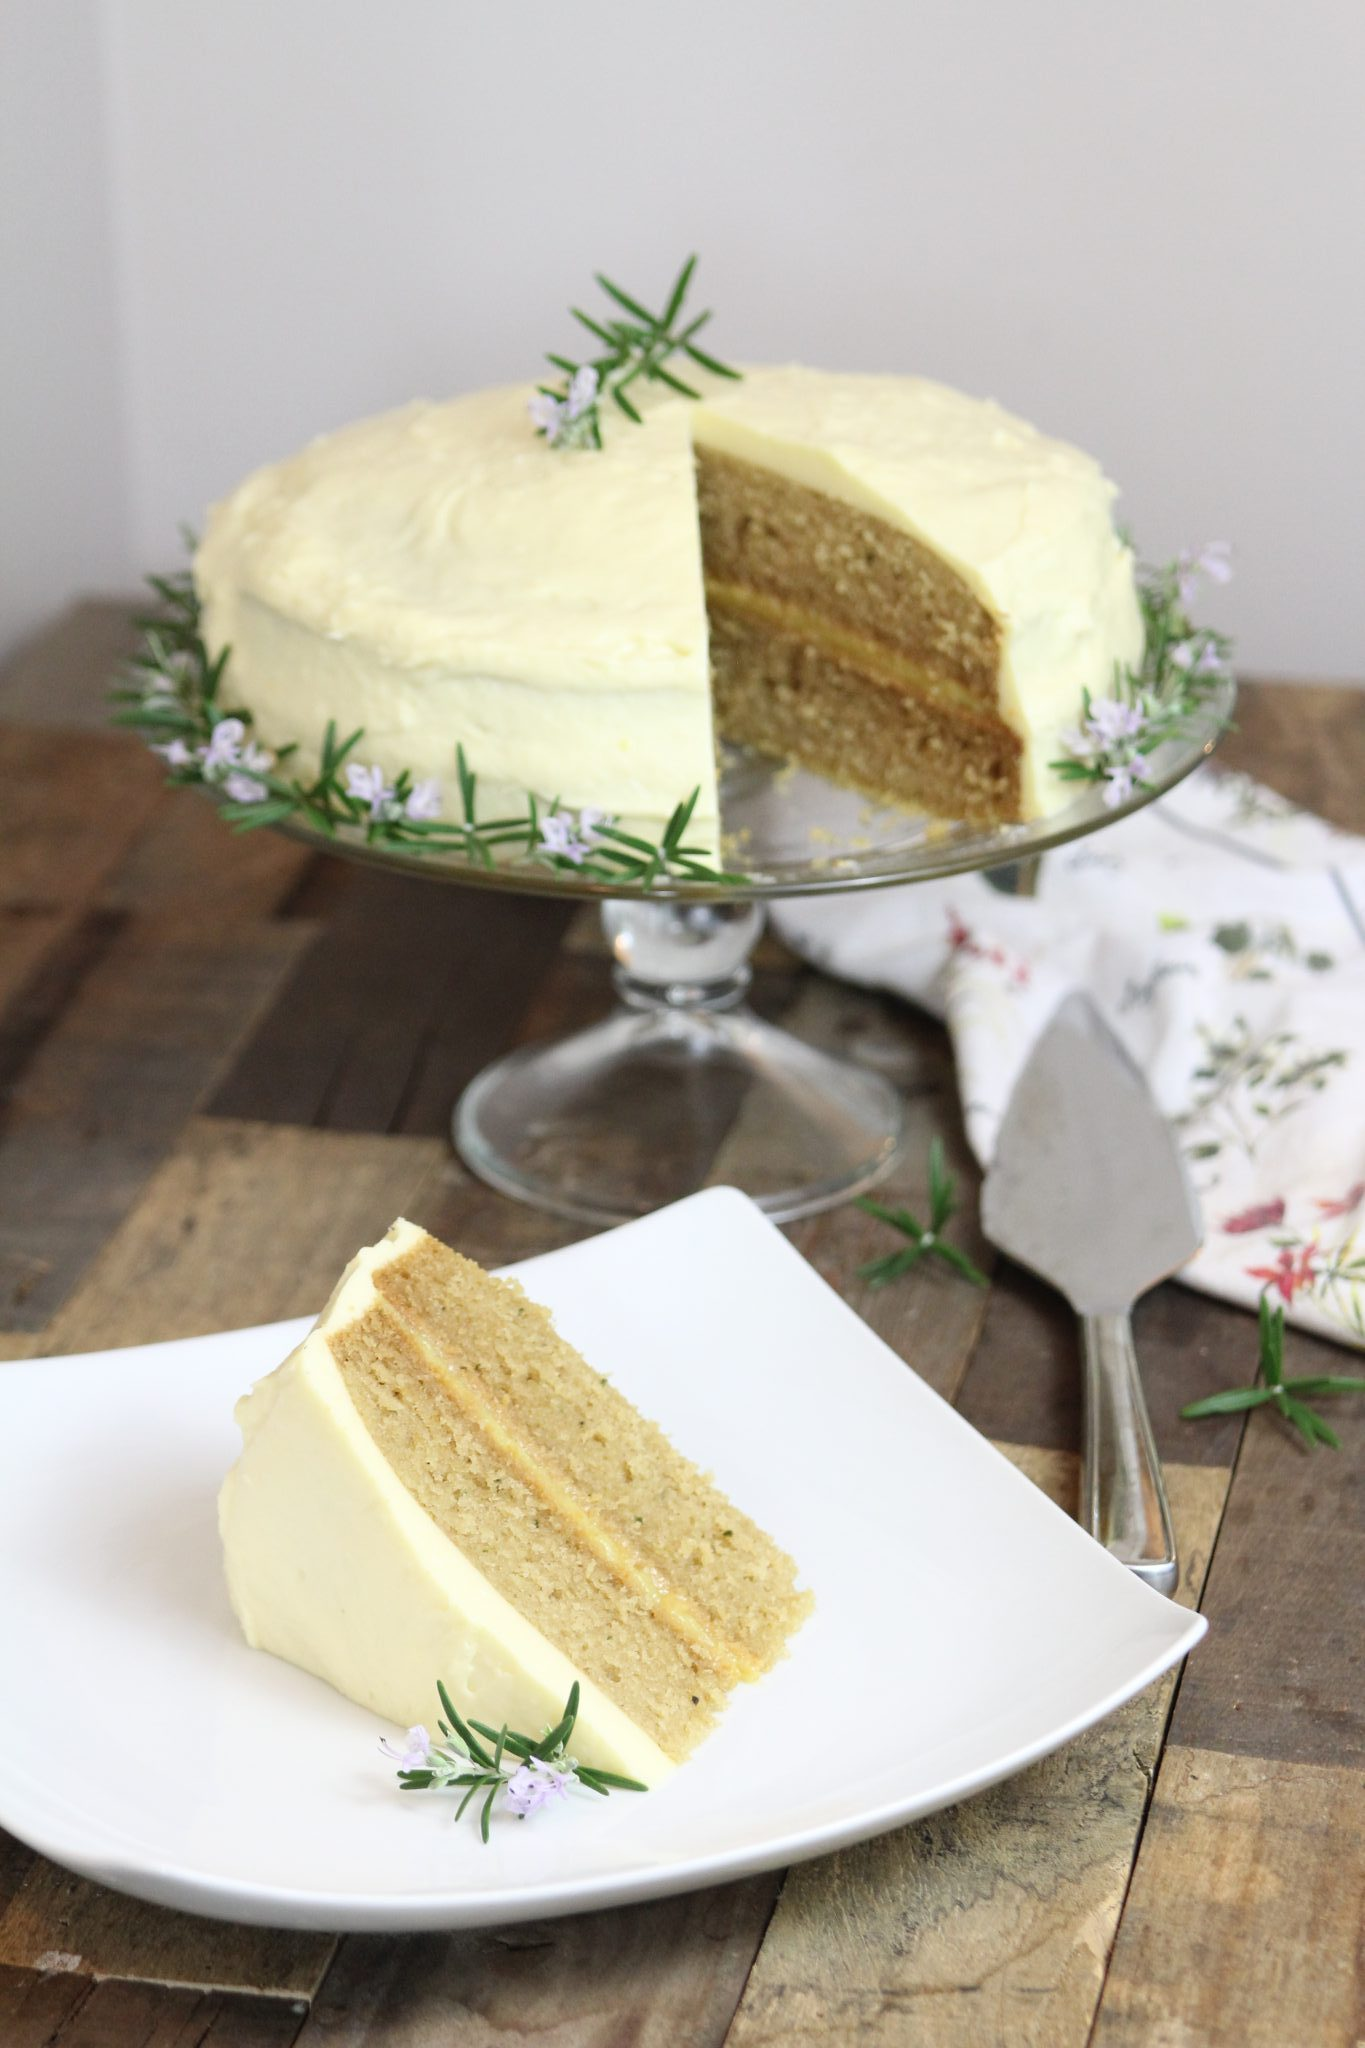 This Italian-style Lemon Rosemary Olive Oil cake is gluten-free, dairy-free and Paleo!